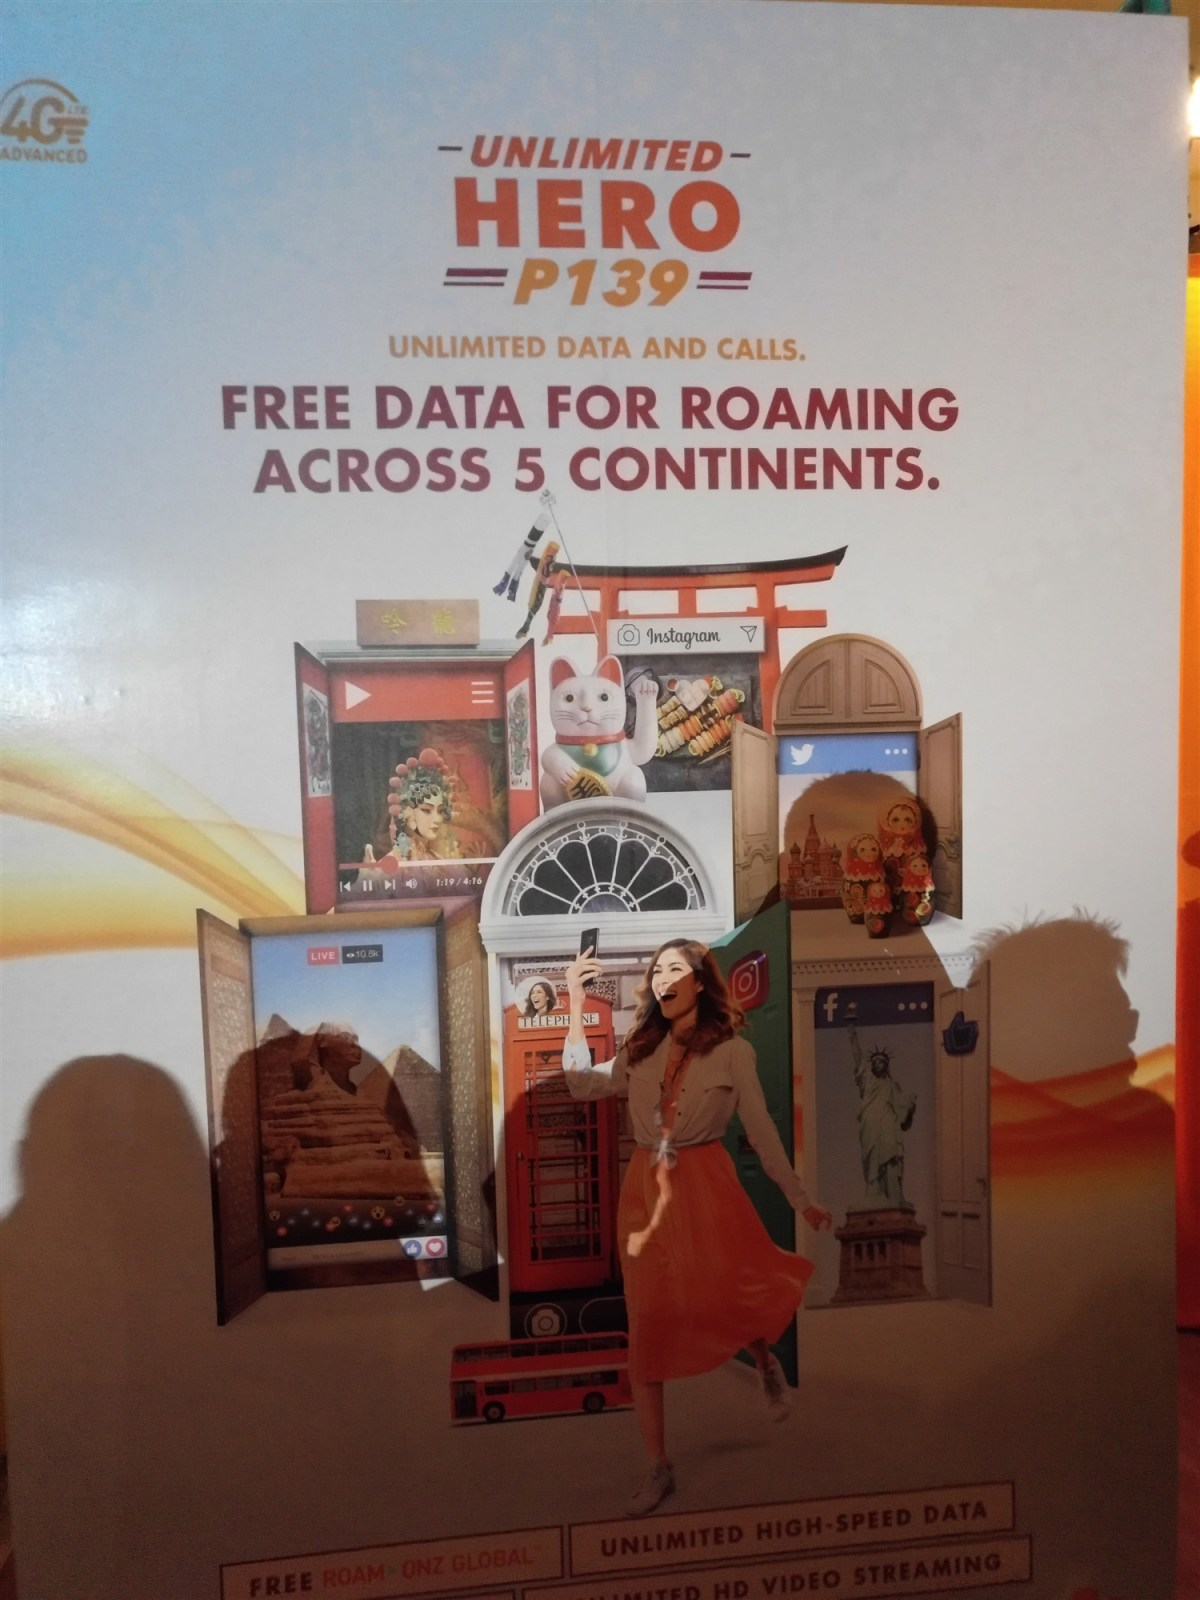 UMobile launch Unlimited Hero P139 plan for unlimited calls